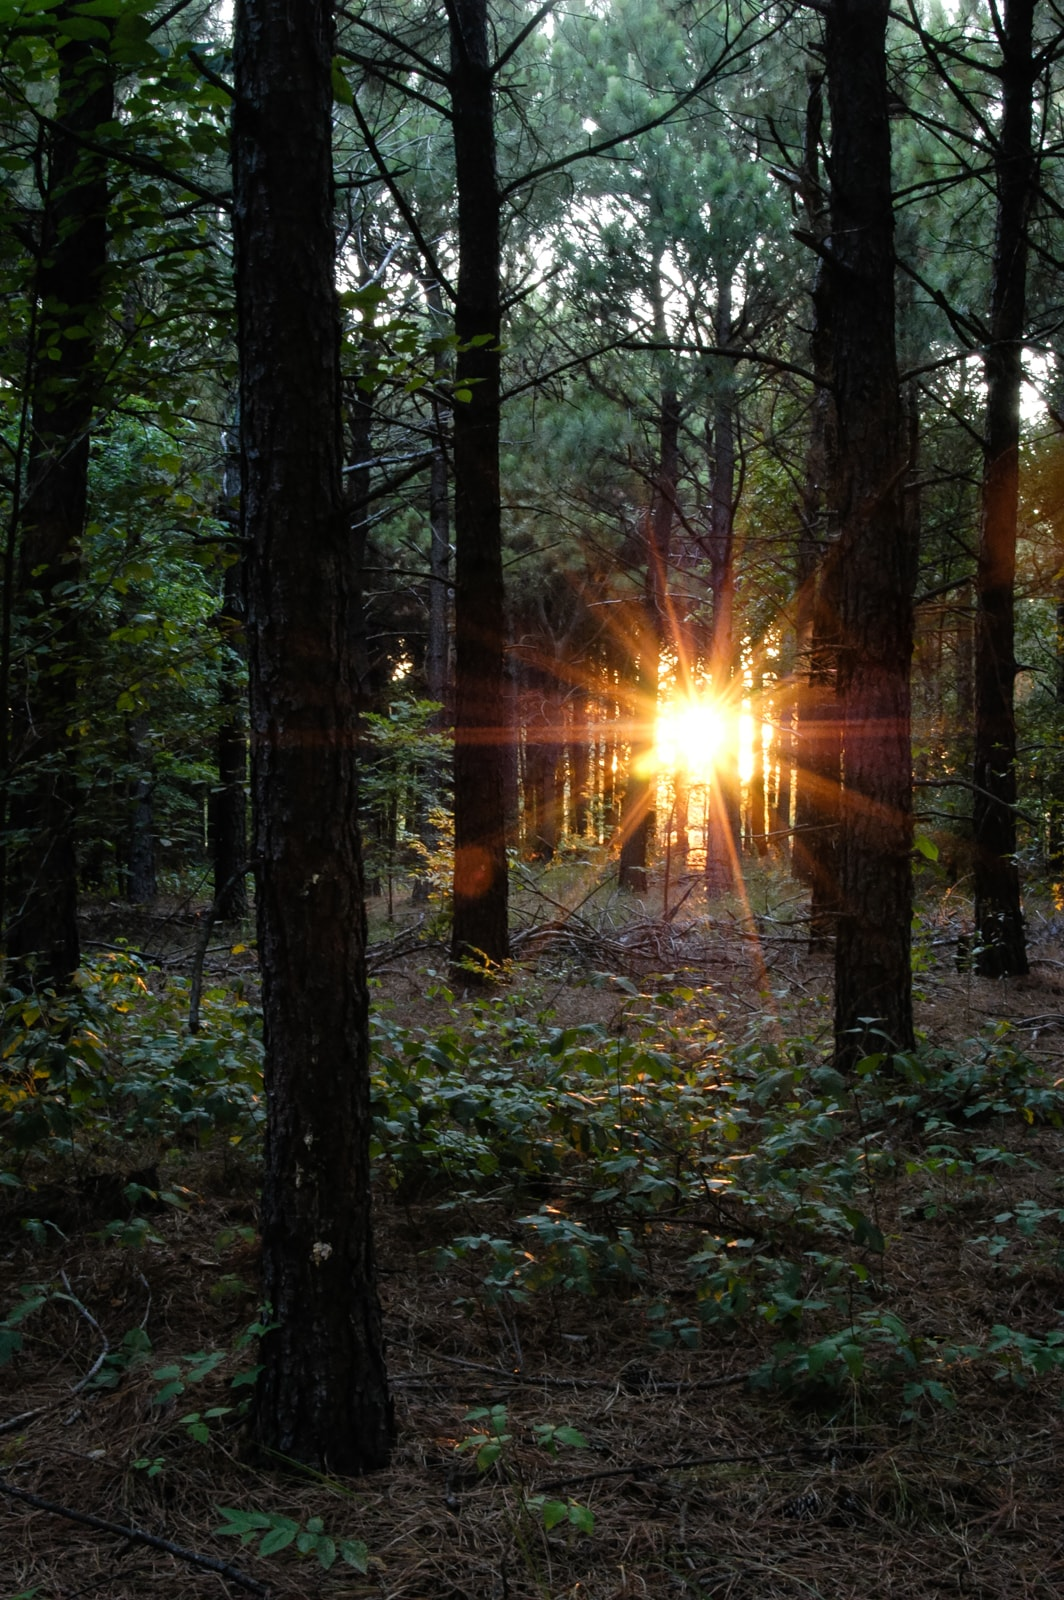 Rays of sunlight peering through a pine forest